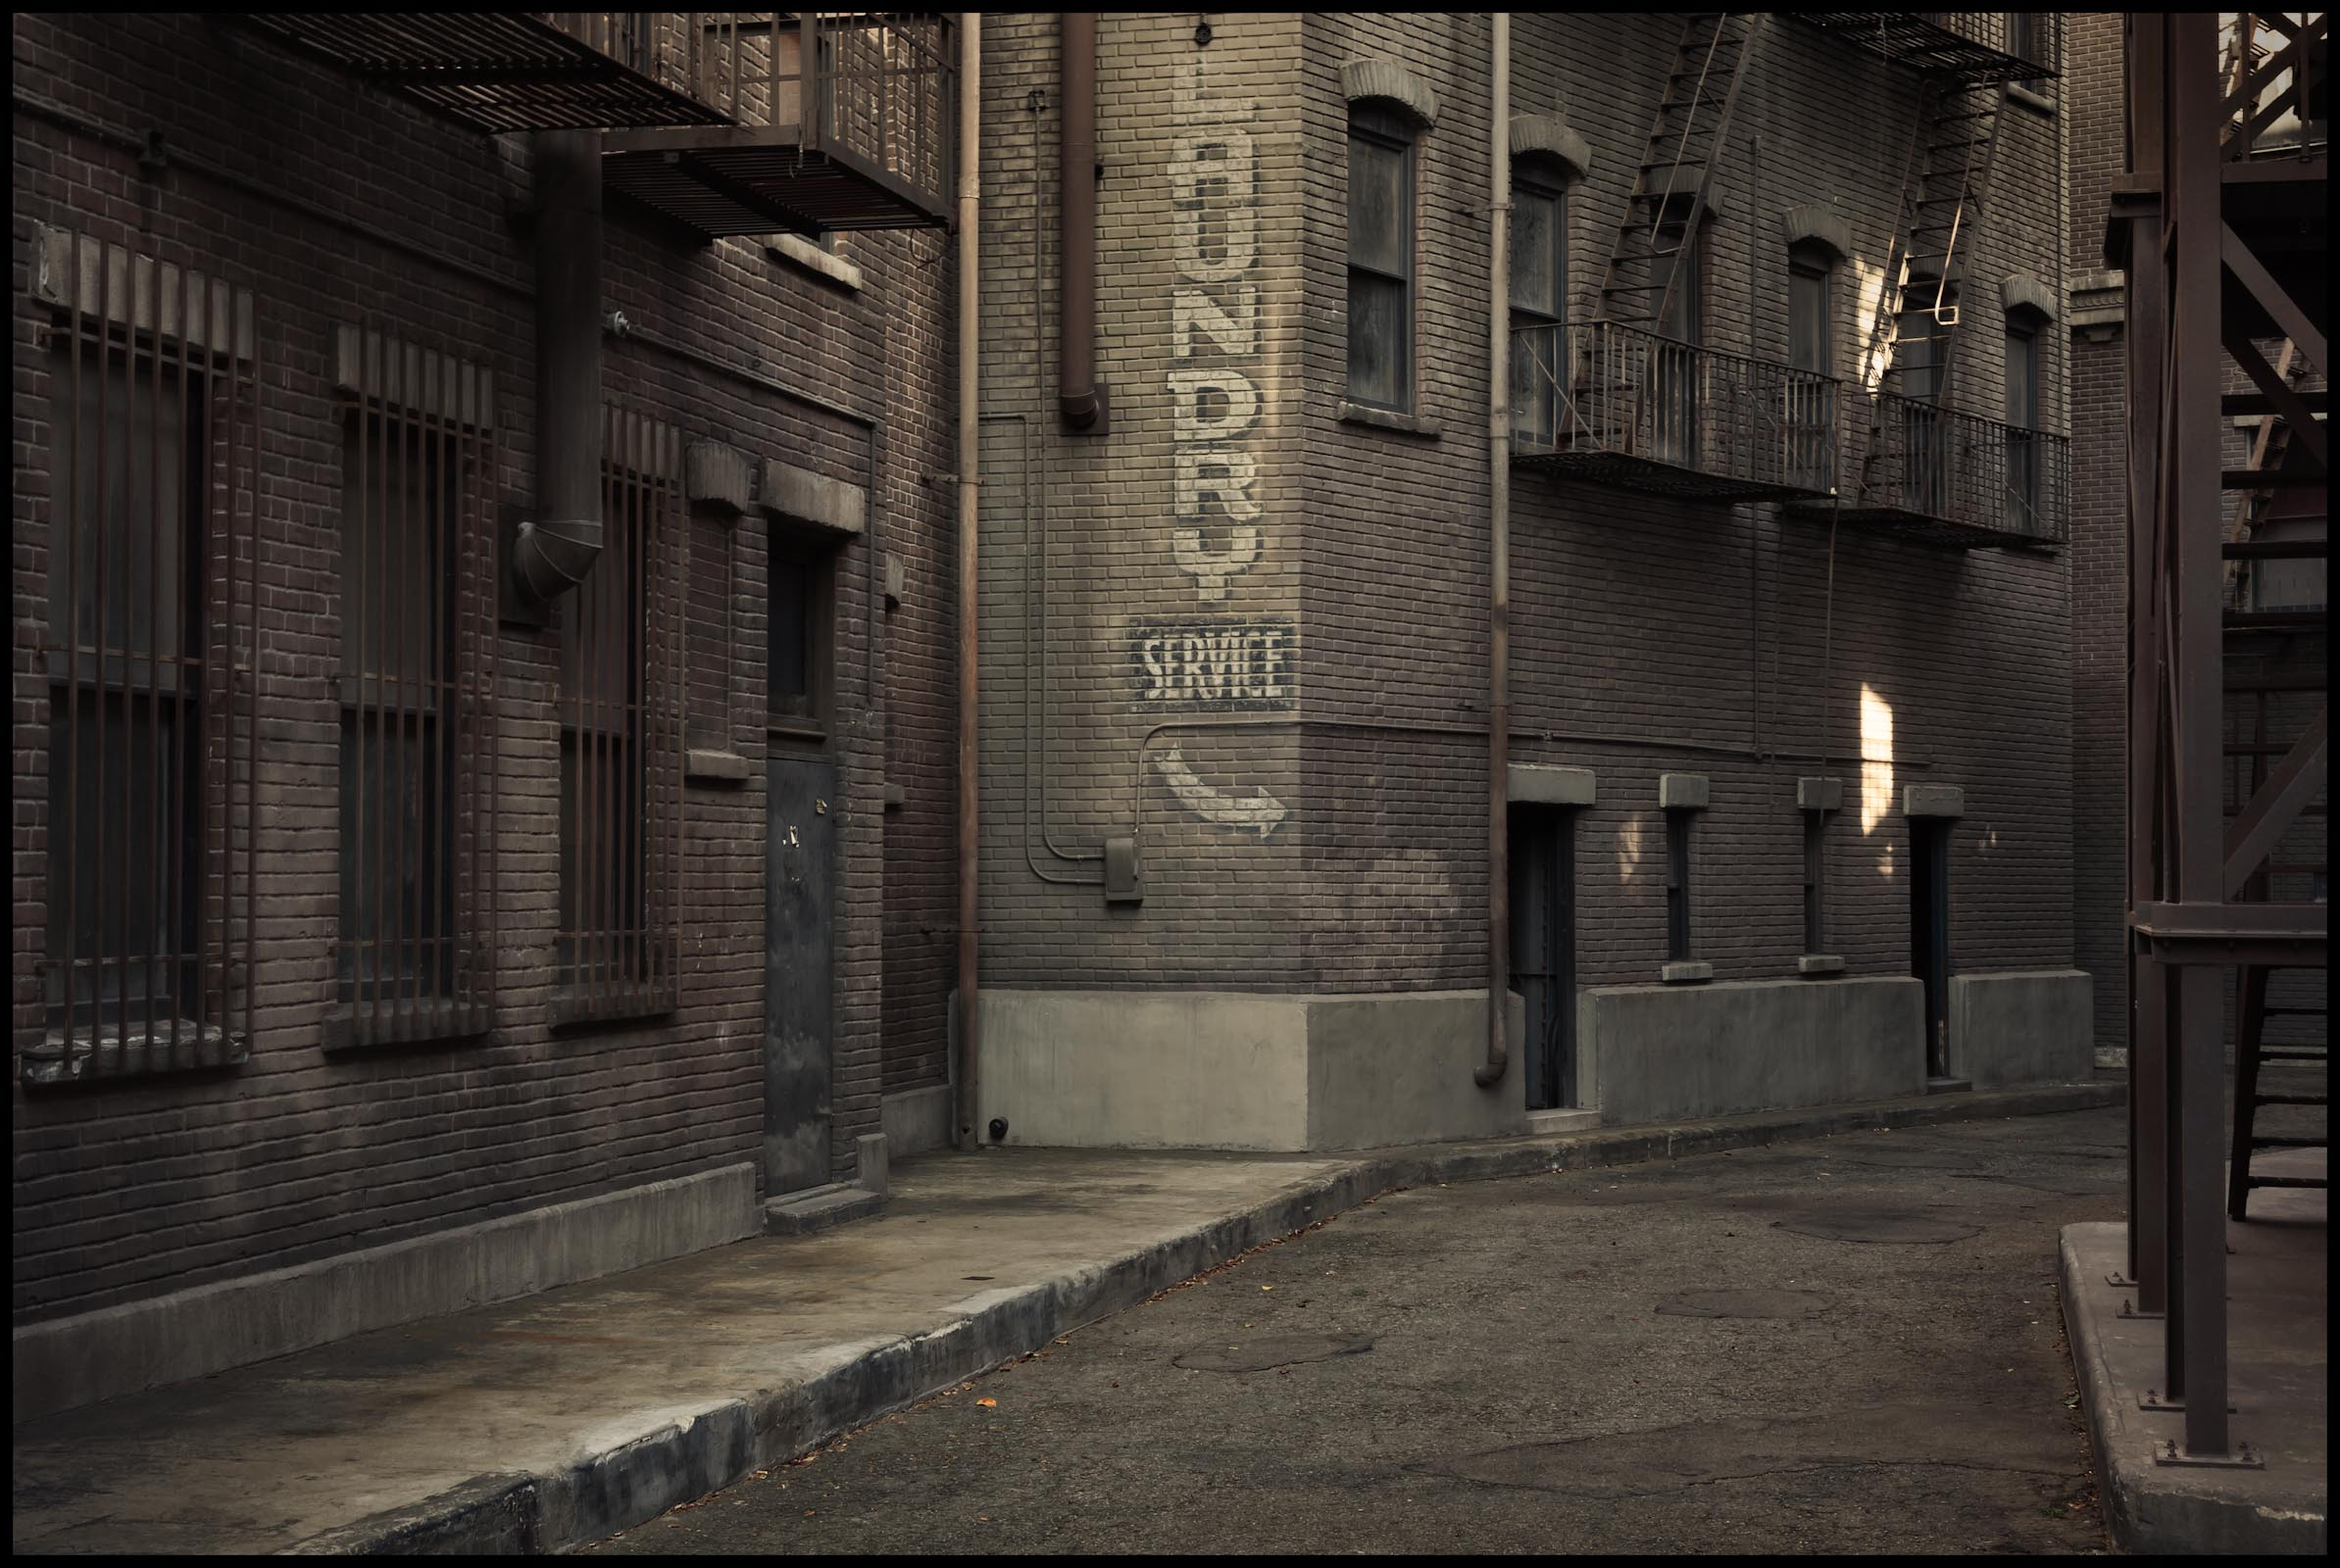 Warner Bros. Studios, Back Alley in New York Street - Burbank, CA - Los Angeles Magazine